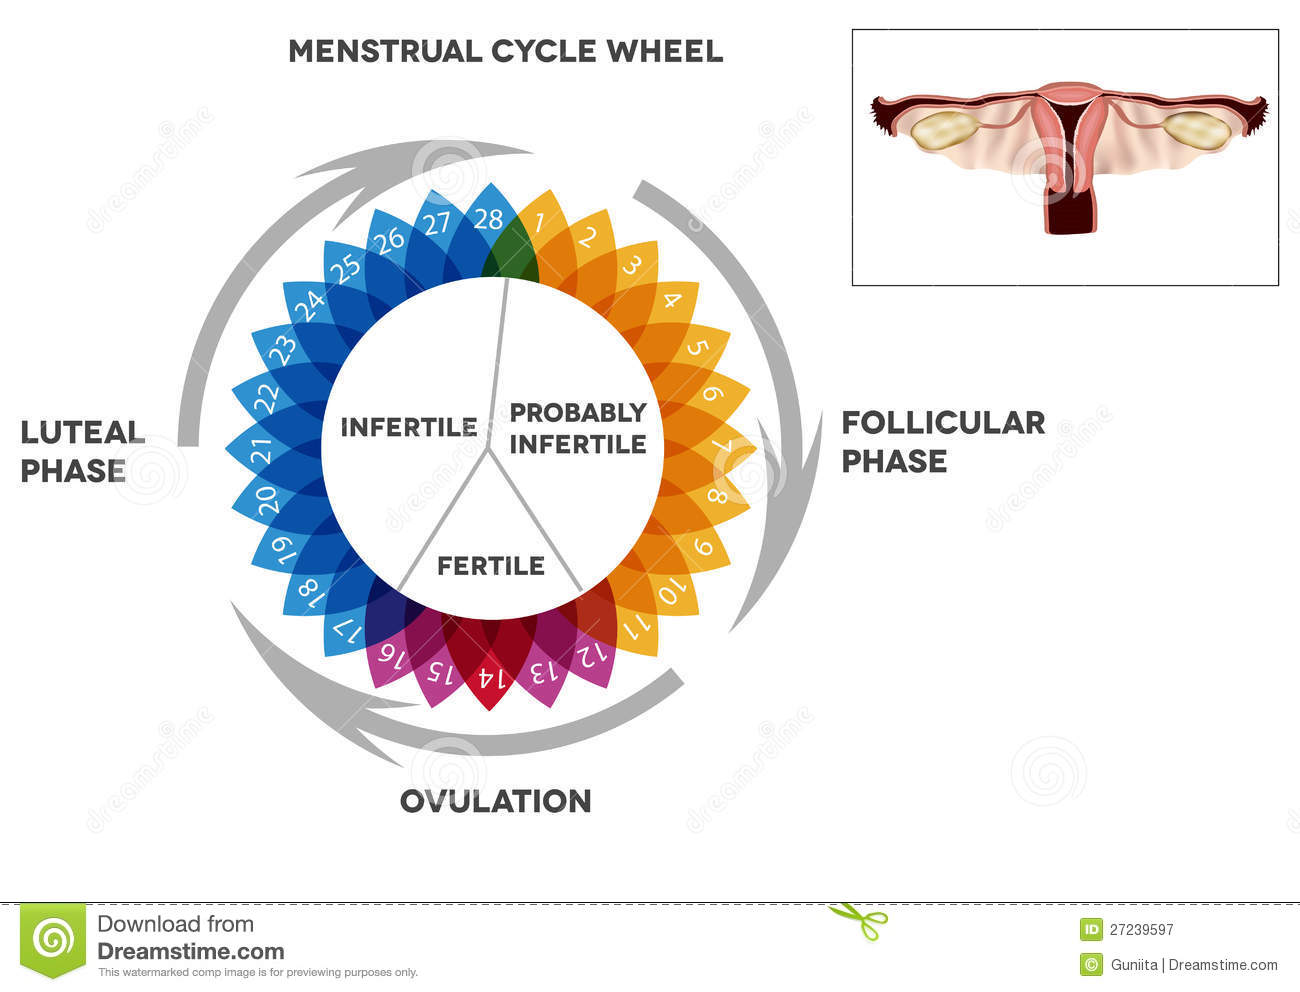 Menstrual cycle calendar and reproductive system